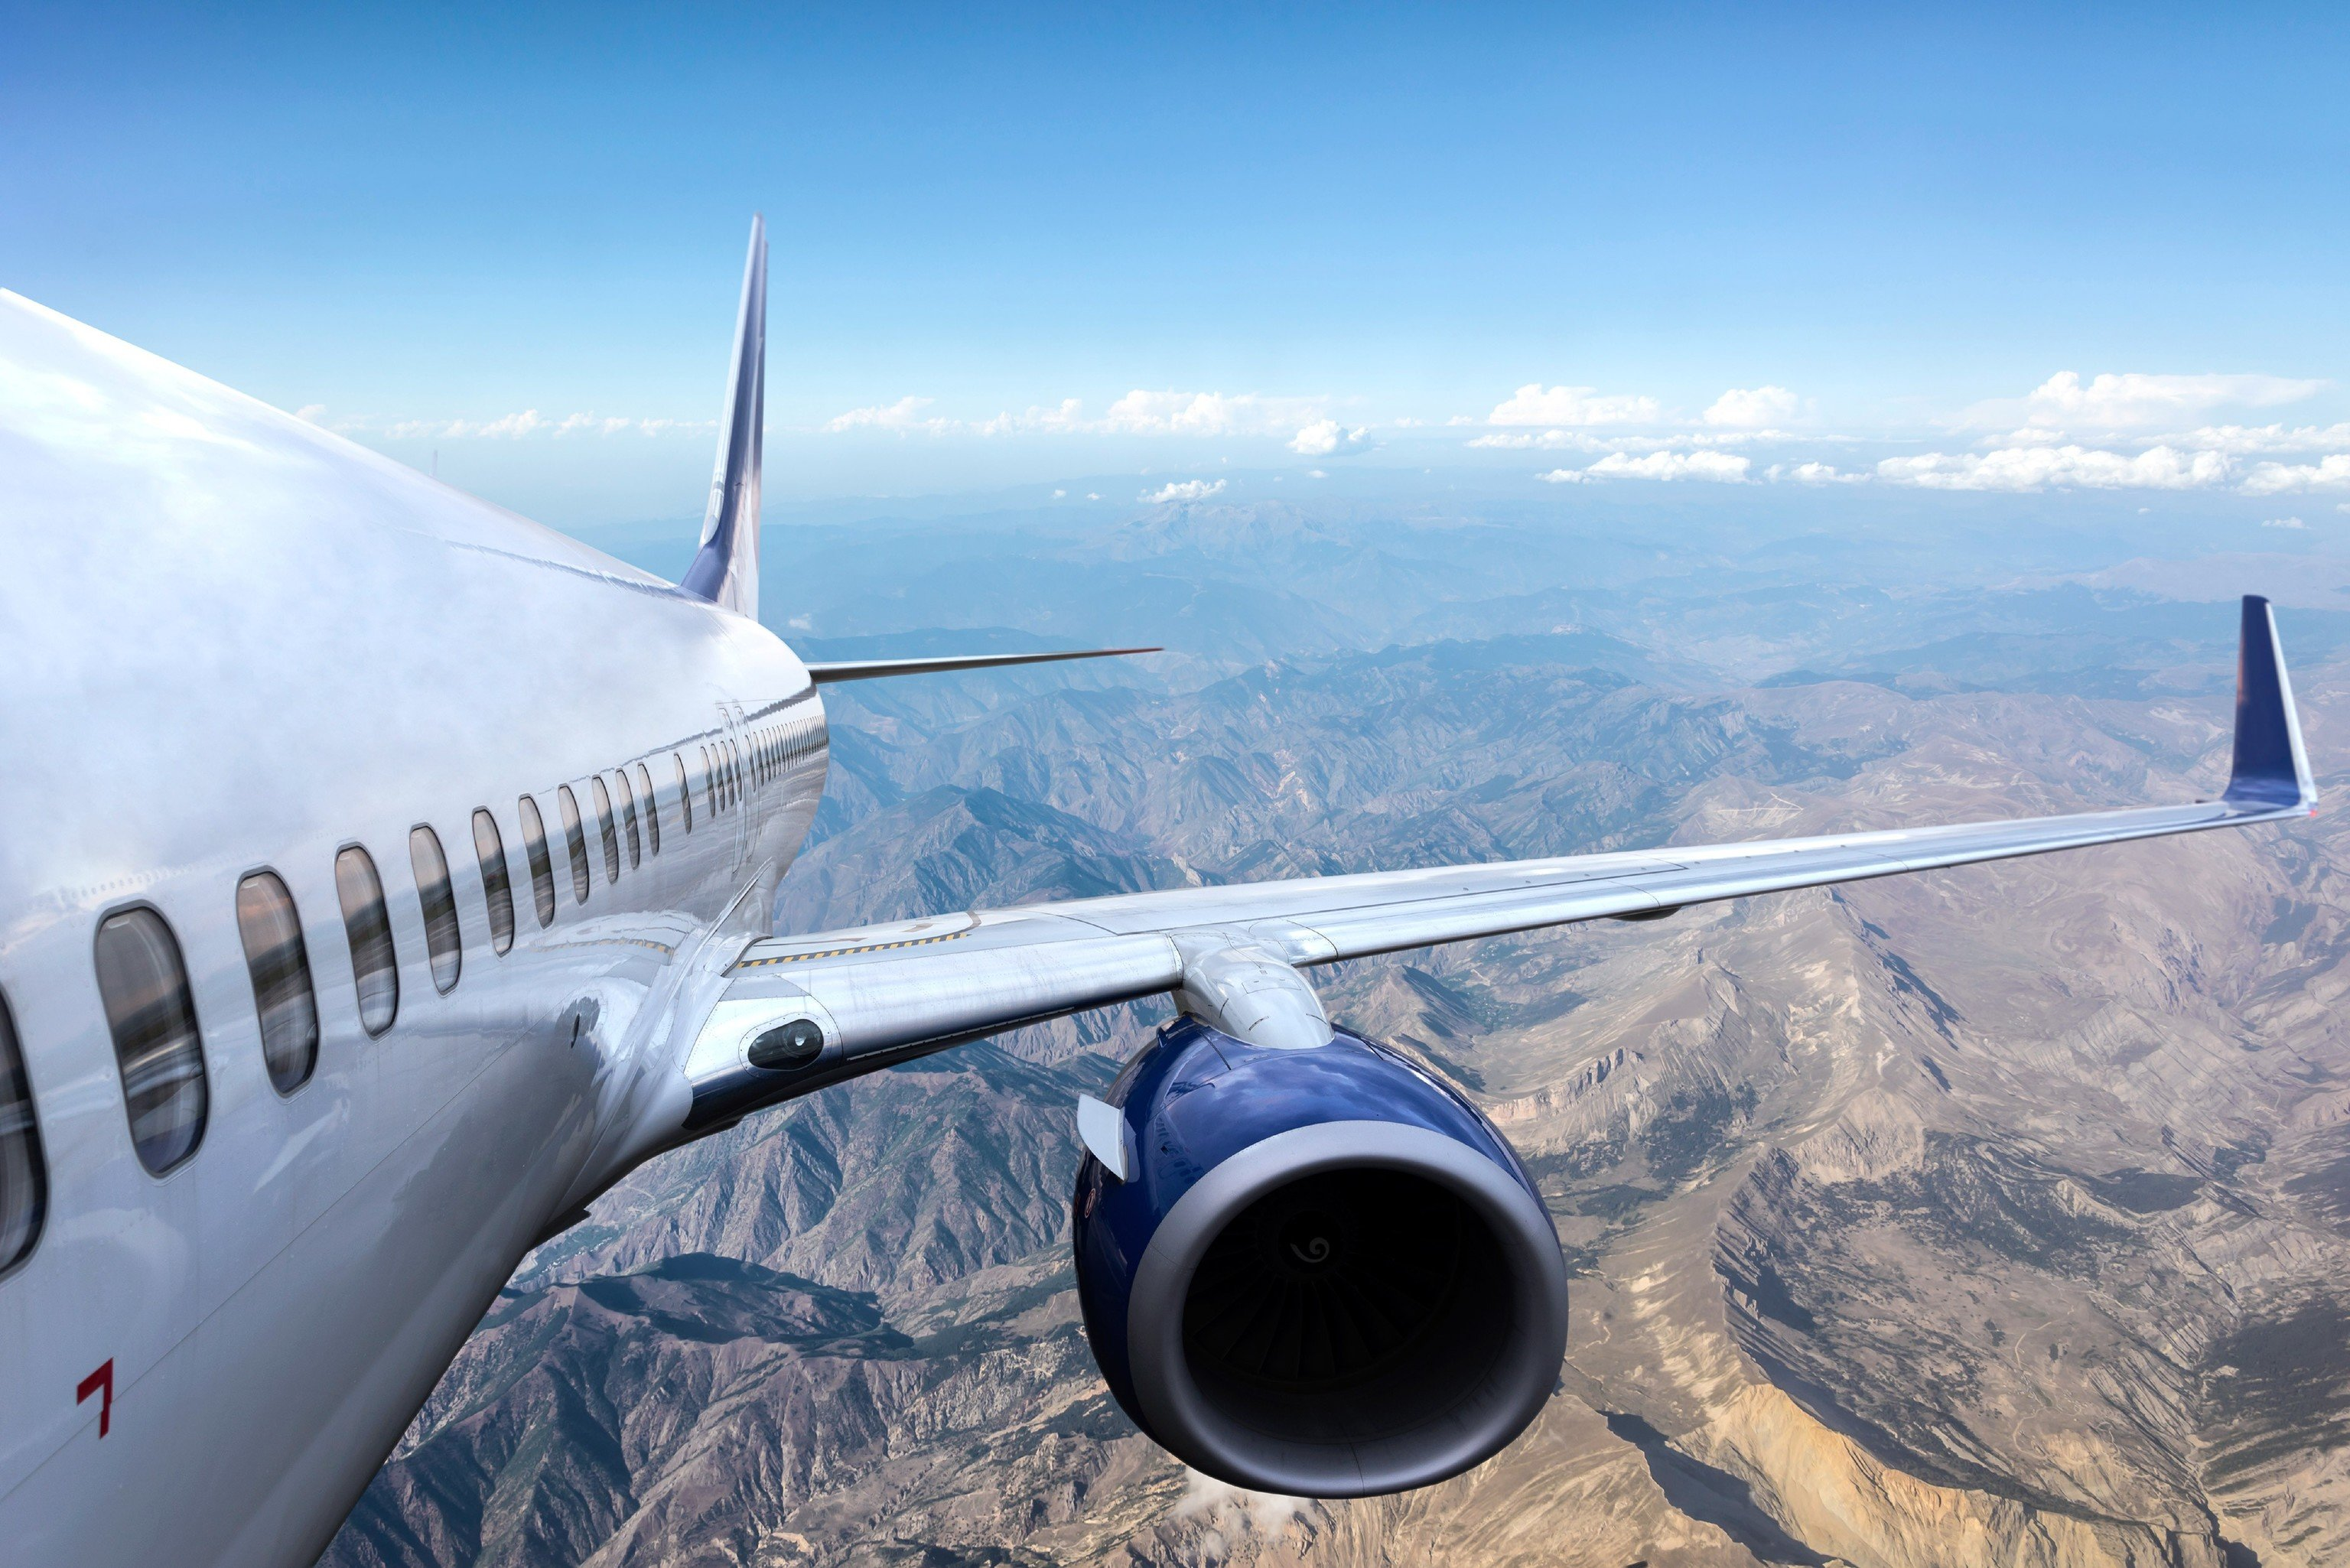 Flights Travel Tips plane mountain sky airplane outdoor airline vehicle airliner air travel aircraft aviation flight air atmosphere of earth runway wide body aircraft jet aircraft air force takeoff aerospace engineering boeing jet boeing 737 narrow body aircraft airbus aircraft engine wing boeing 787 dreamliner boeing 767 airbus a330 engine tarmac day